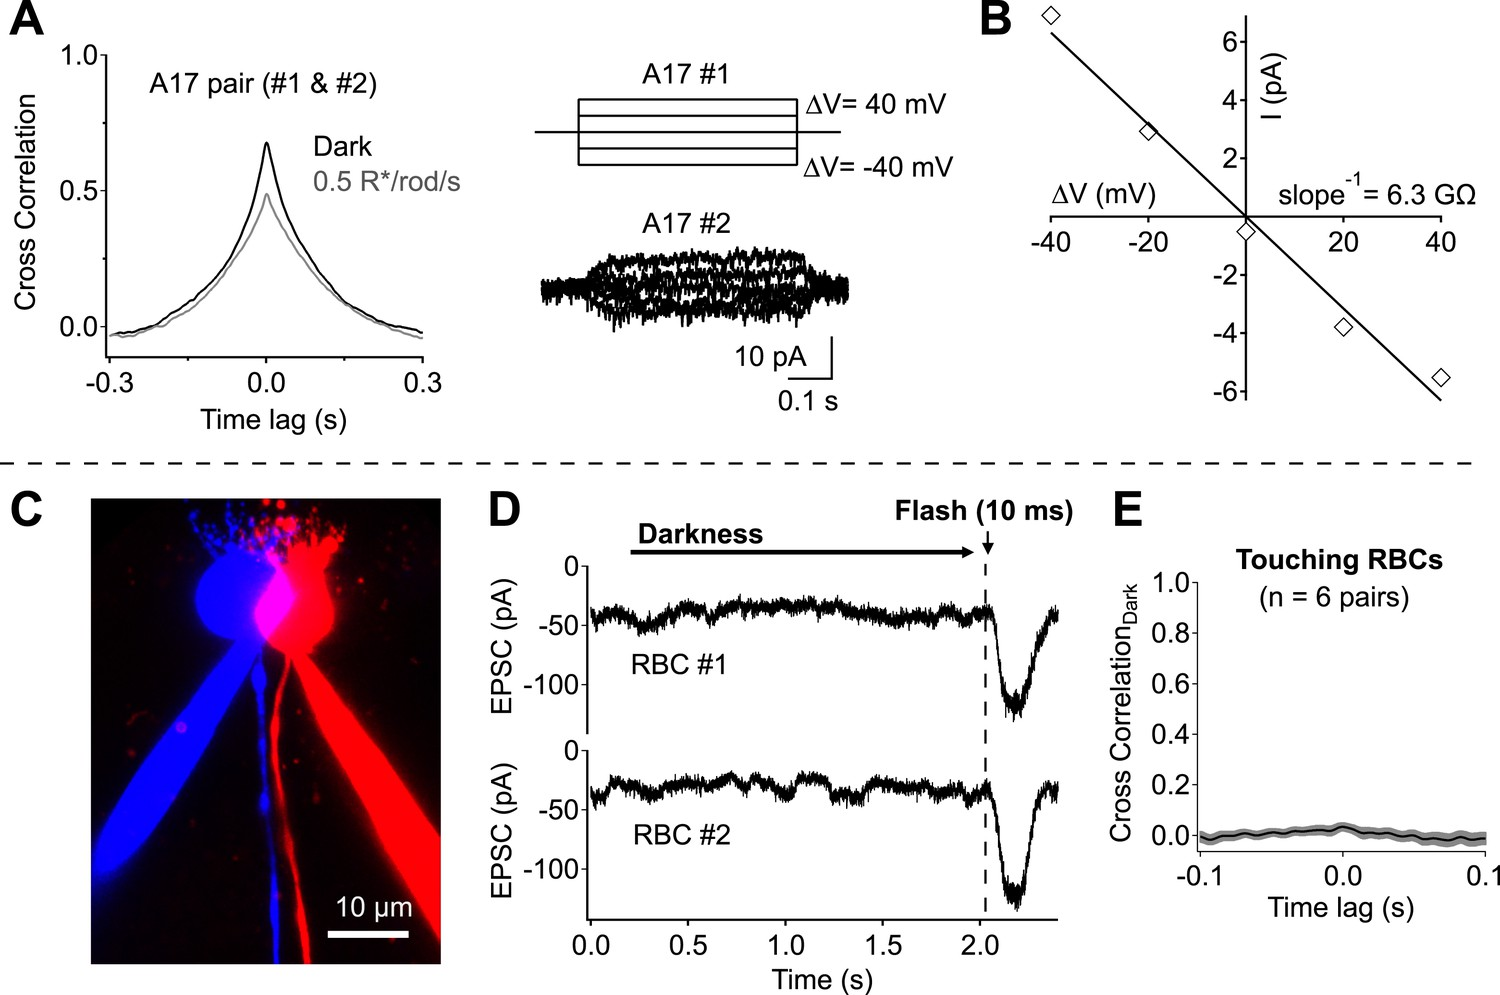 Cross Synaptic Synchrony And Transmission Of Signal Noise Across Lead Lag Wiring Diagram Network Divergence Electrical Coupling Only Weakly Contribute To Correlations Observed In Highly Overlapping A17 Amacrine Cells